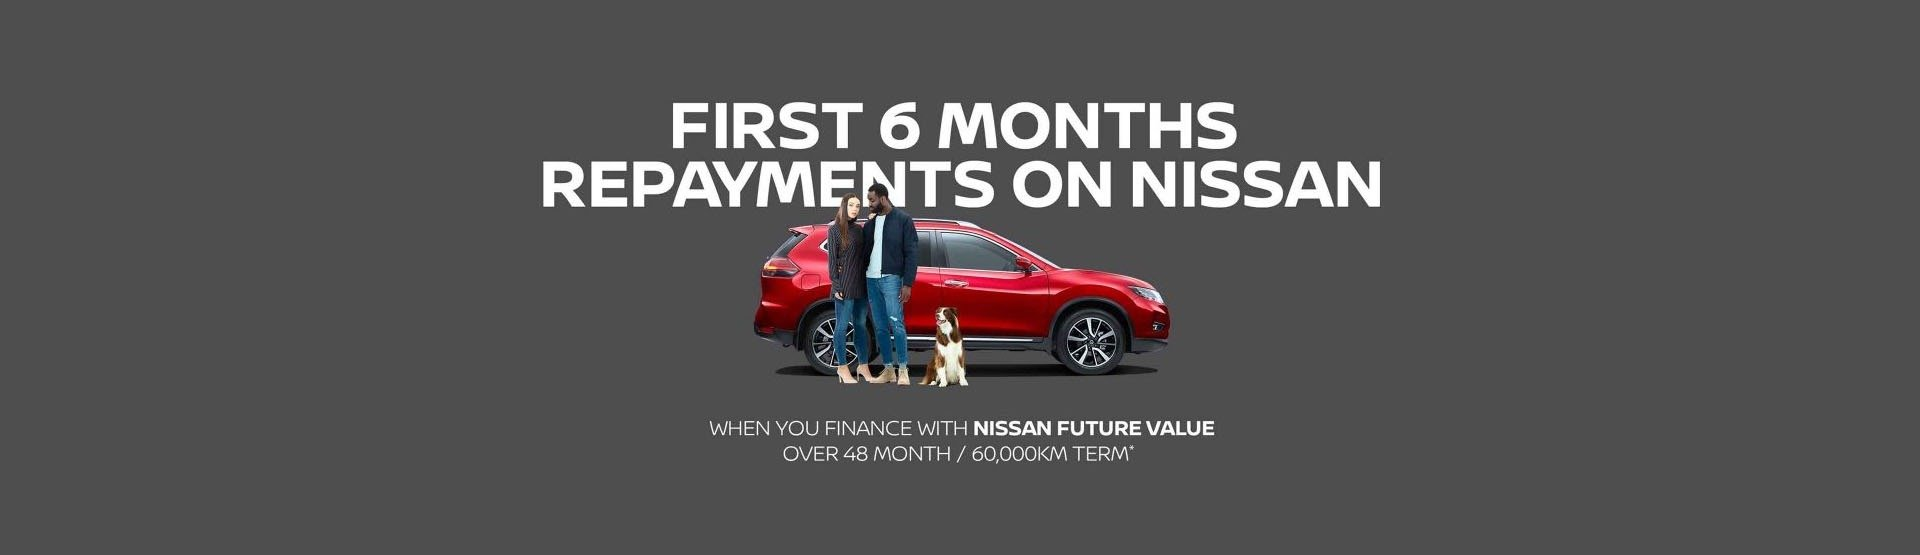 Nissan 6 Month Repayments